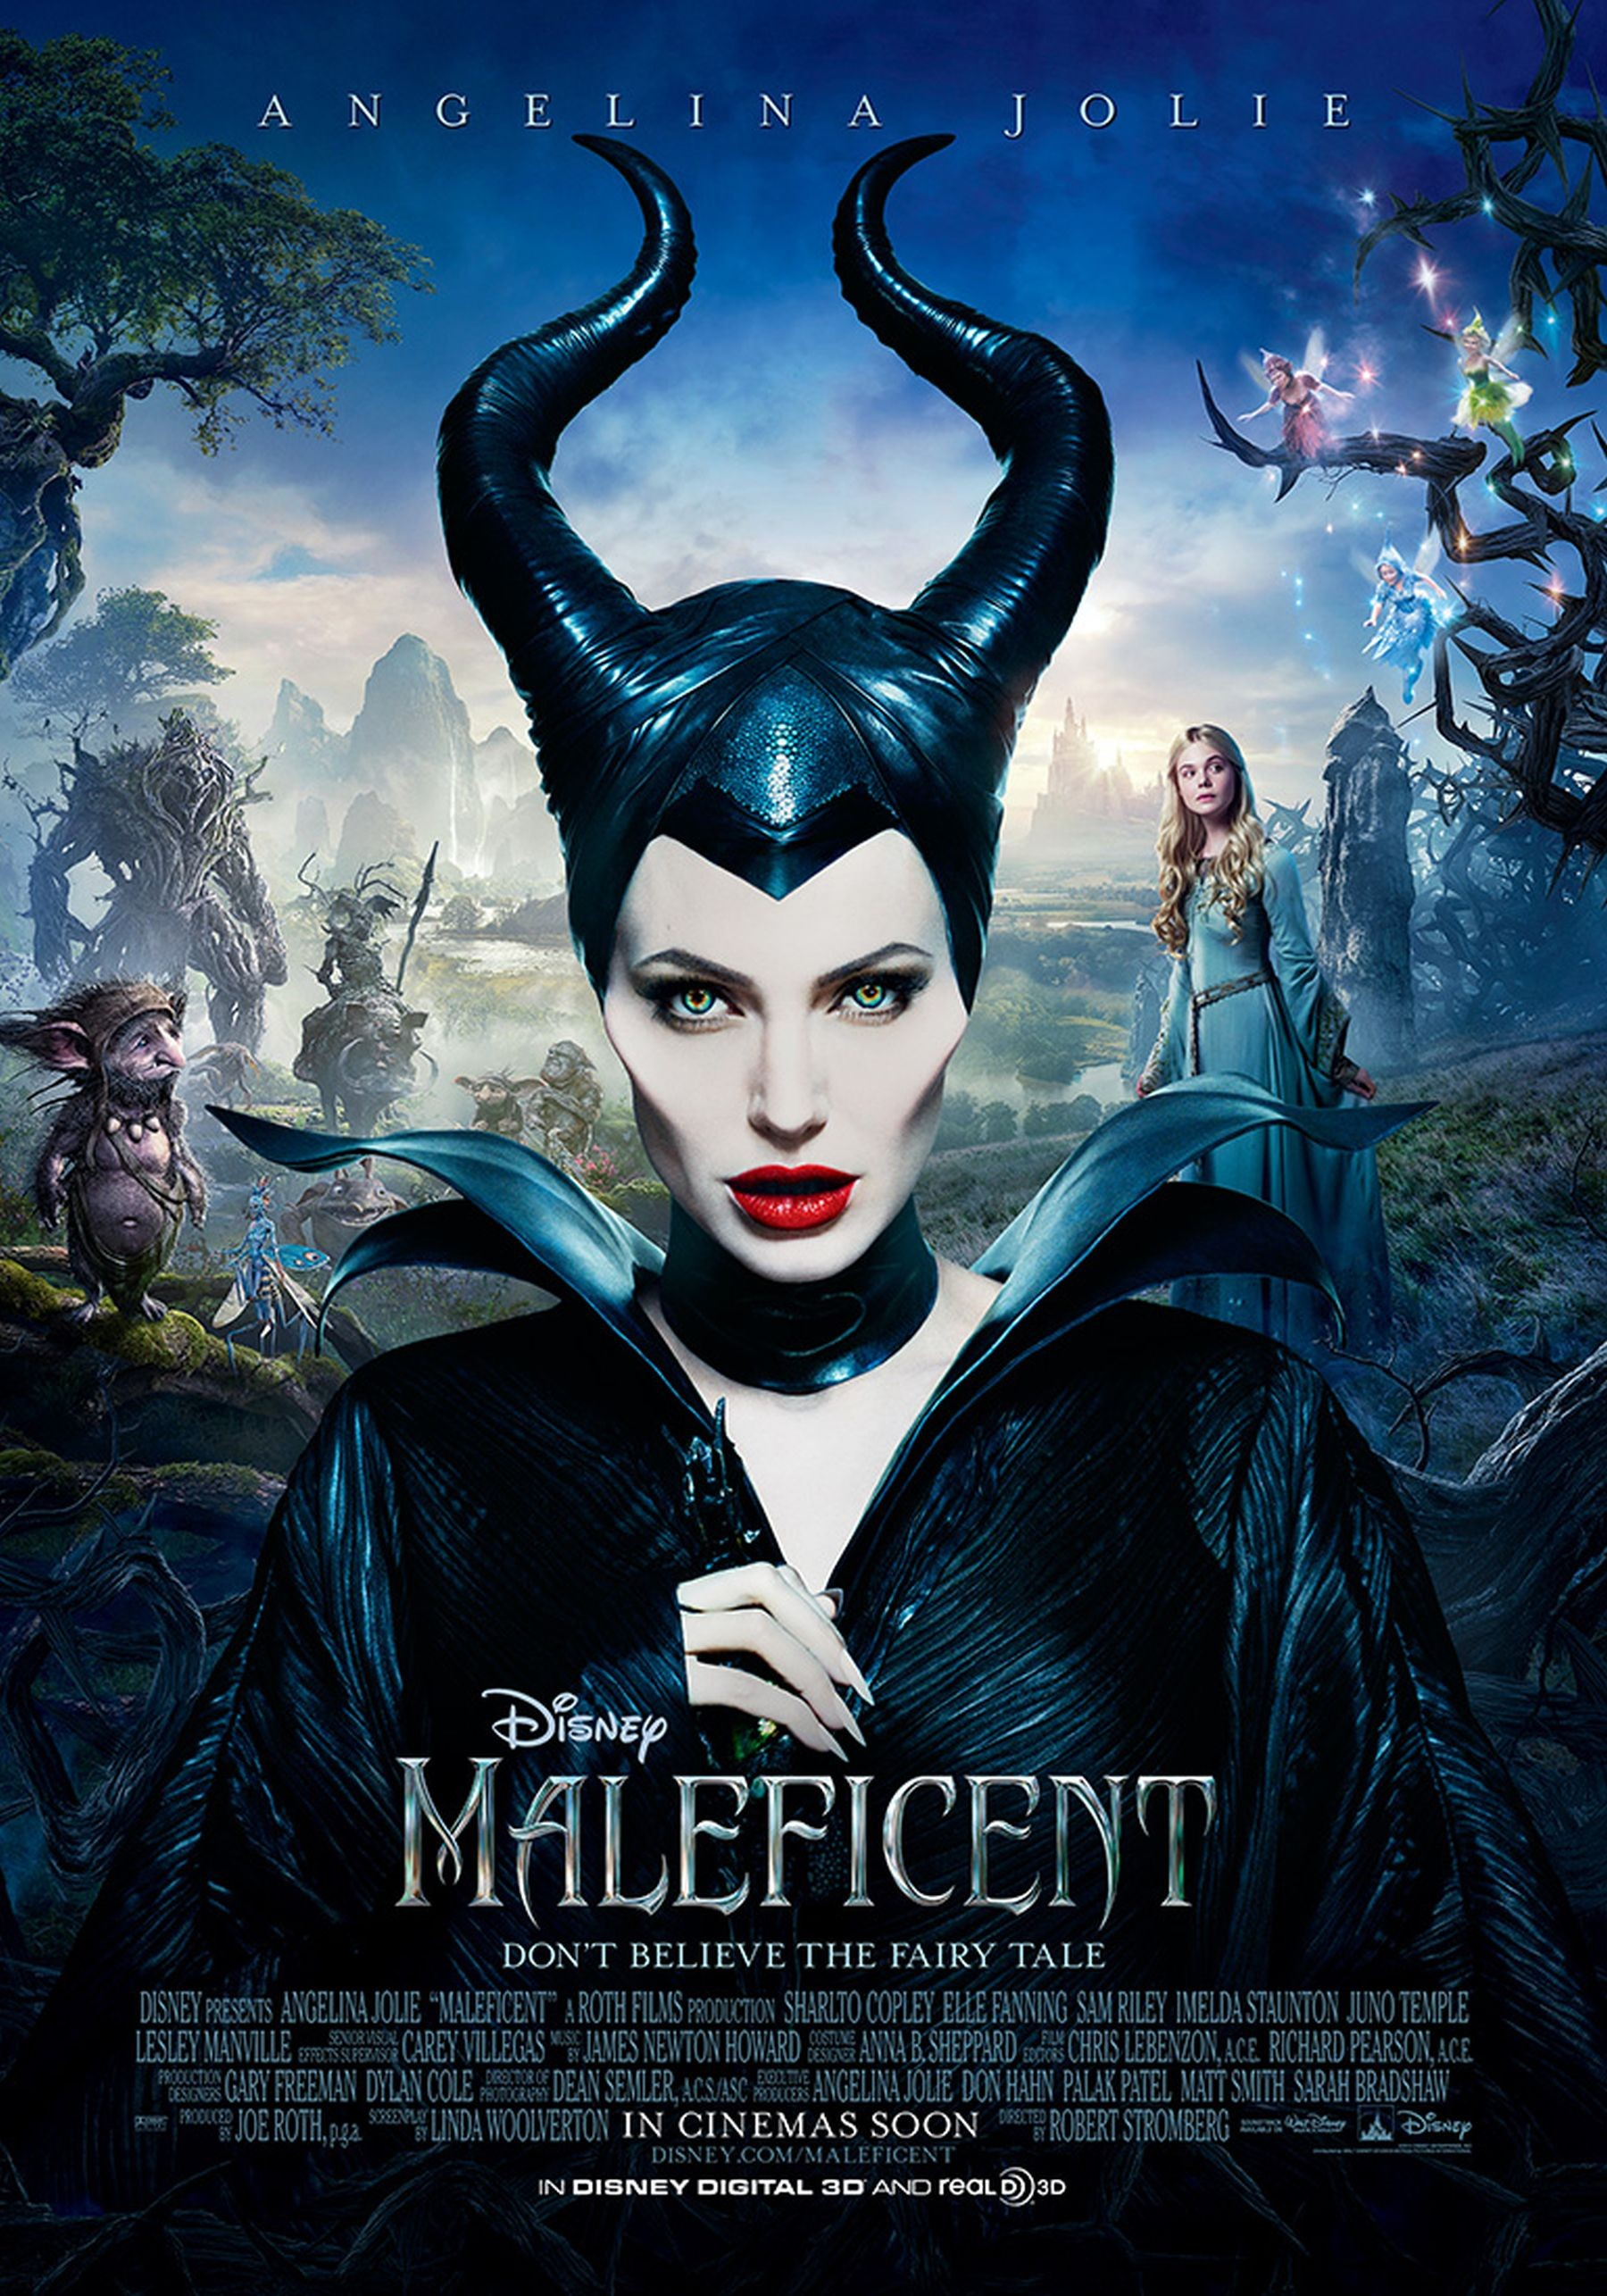 http://img3.wikia.nocookie.net/__cb20140419102200/disney/images/a/a4/Maleficent-(2014)-149.jpg